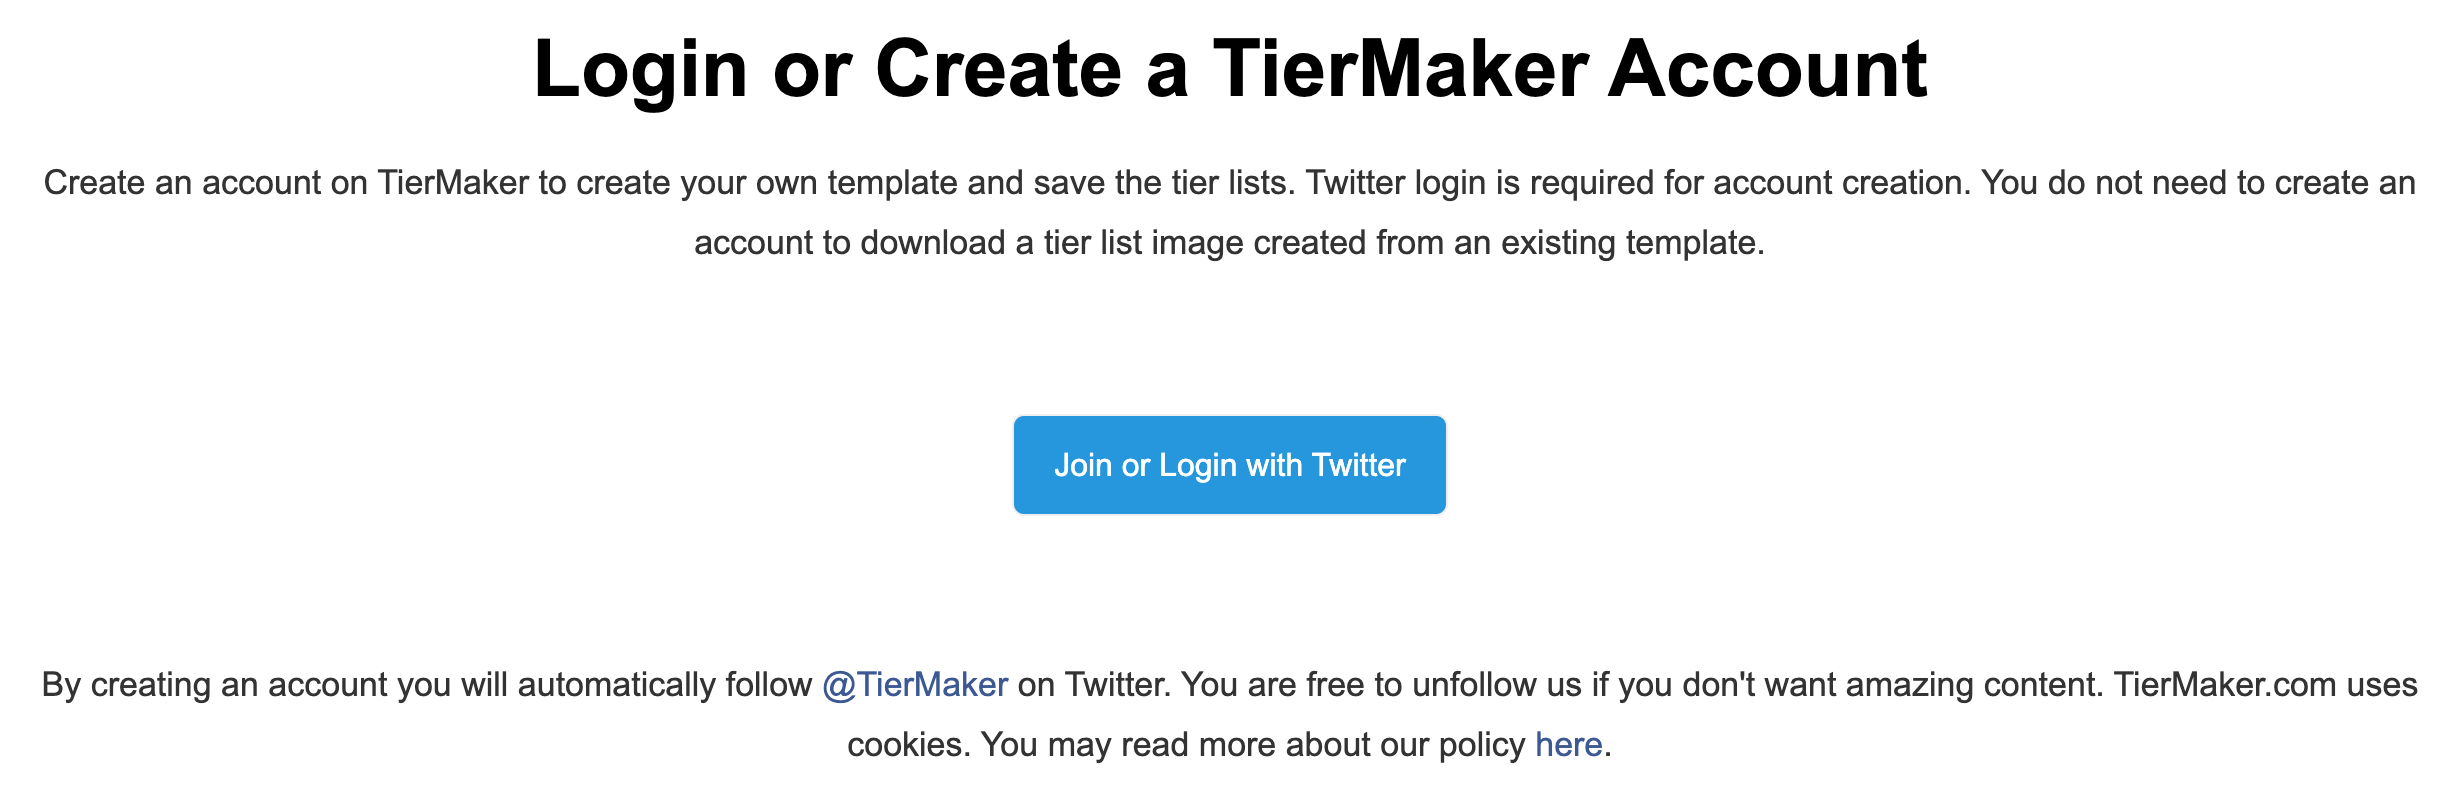 Using Twitter login to create a TierMaker account